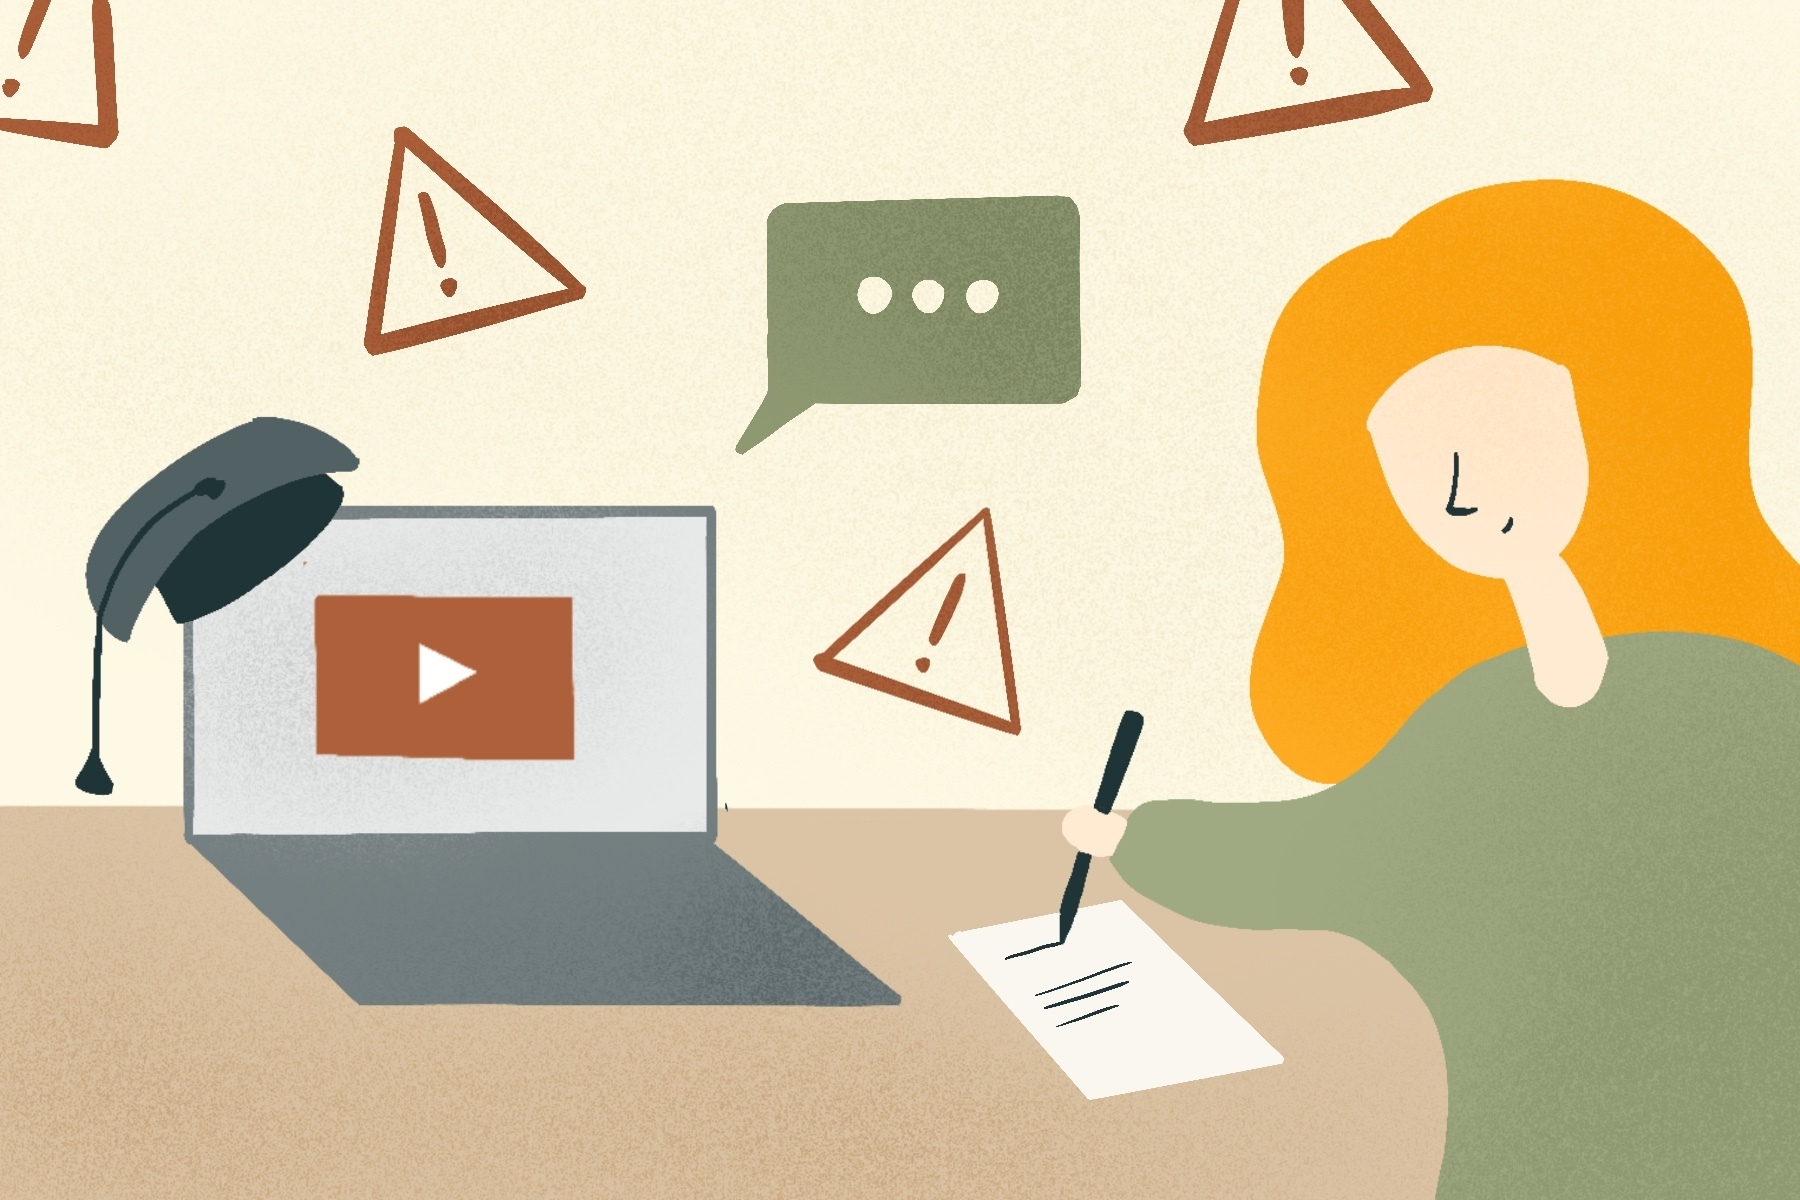 An illustration of a woman watching StudyTube videos for an article about how StudyTubers can be harmful. (Illustration by Sonja Vasiljeva, San Jose State University)